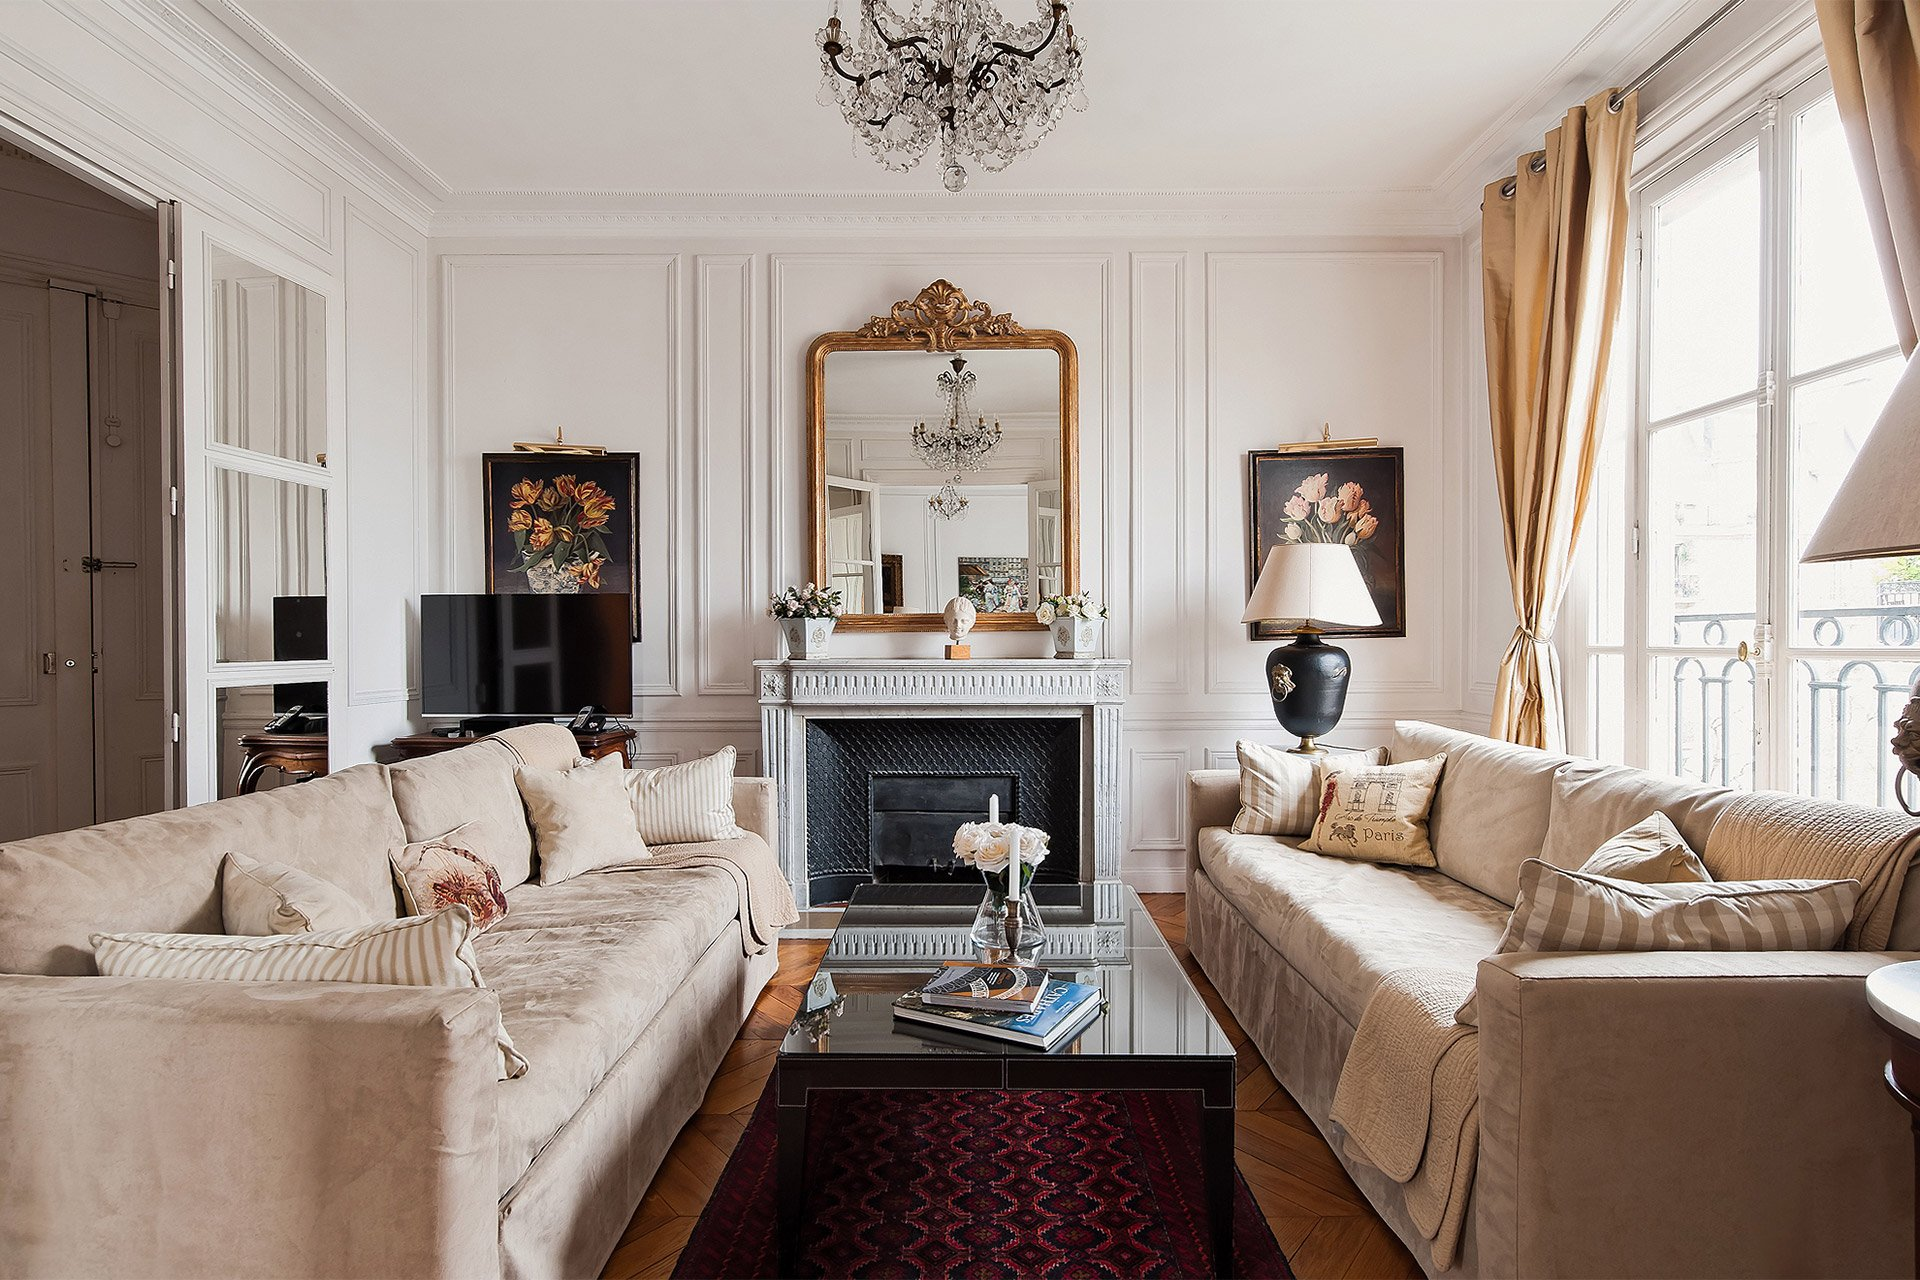 Chateauneuf- 6 Perfect Paris Apartment Rentals for Your Family Vacation by Paris Perfect